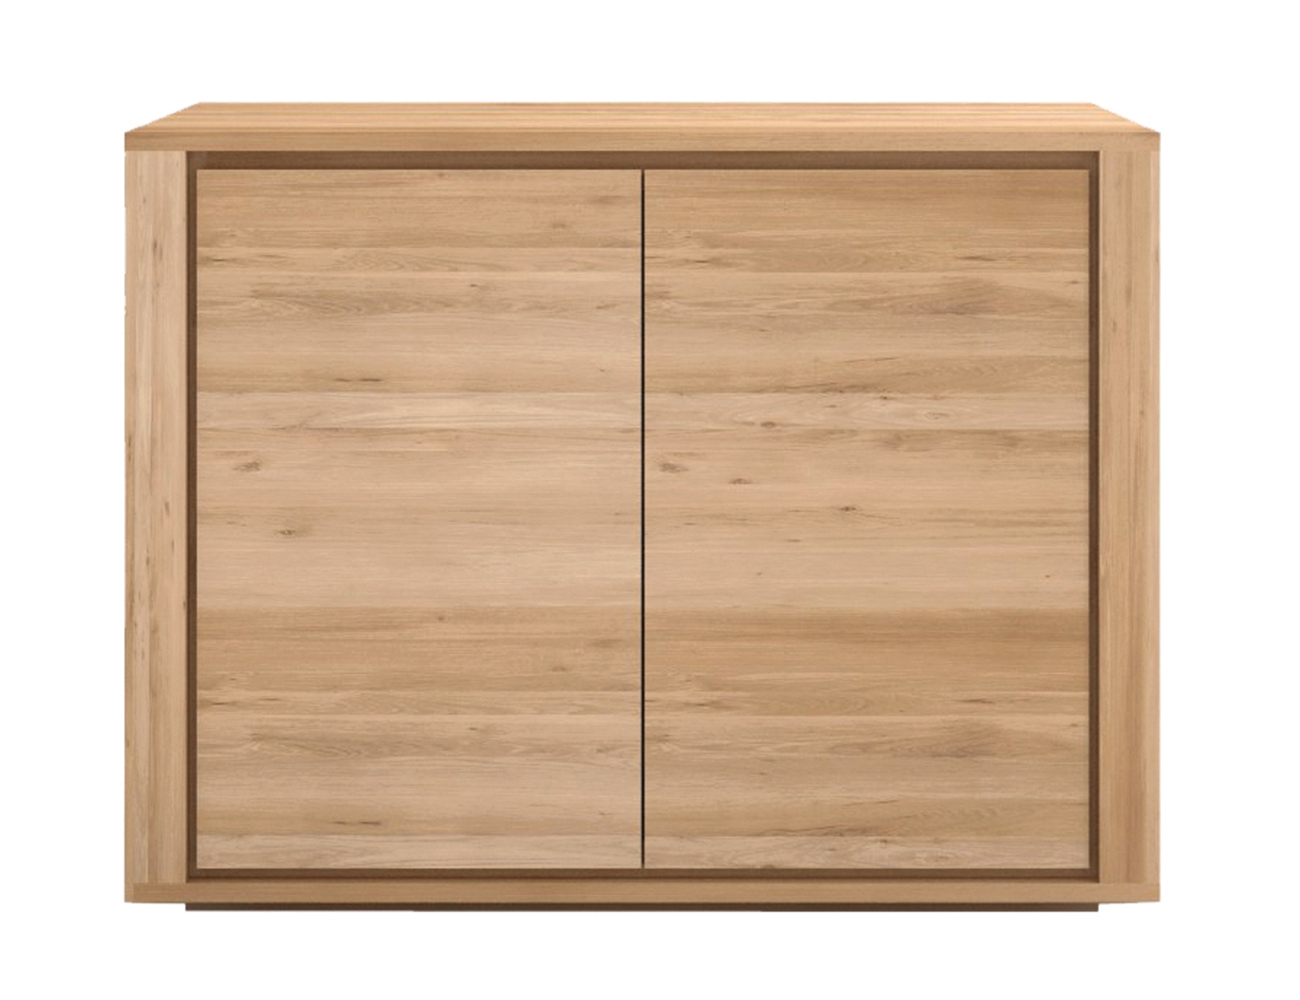 ETHNICRAFT komody Shadow Sideboard - 2 doors